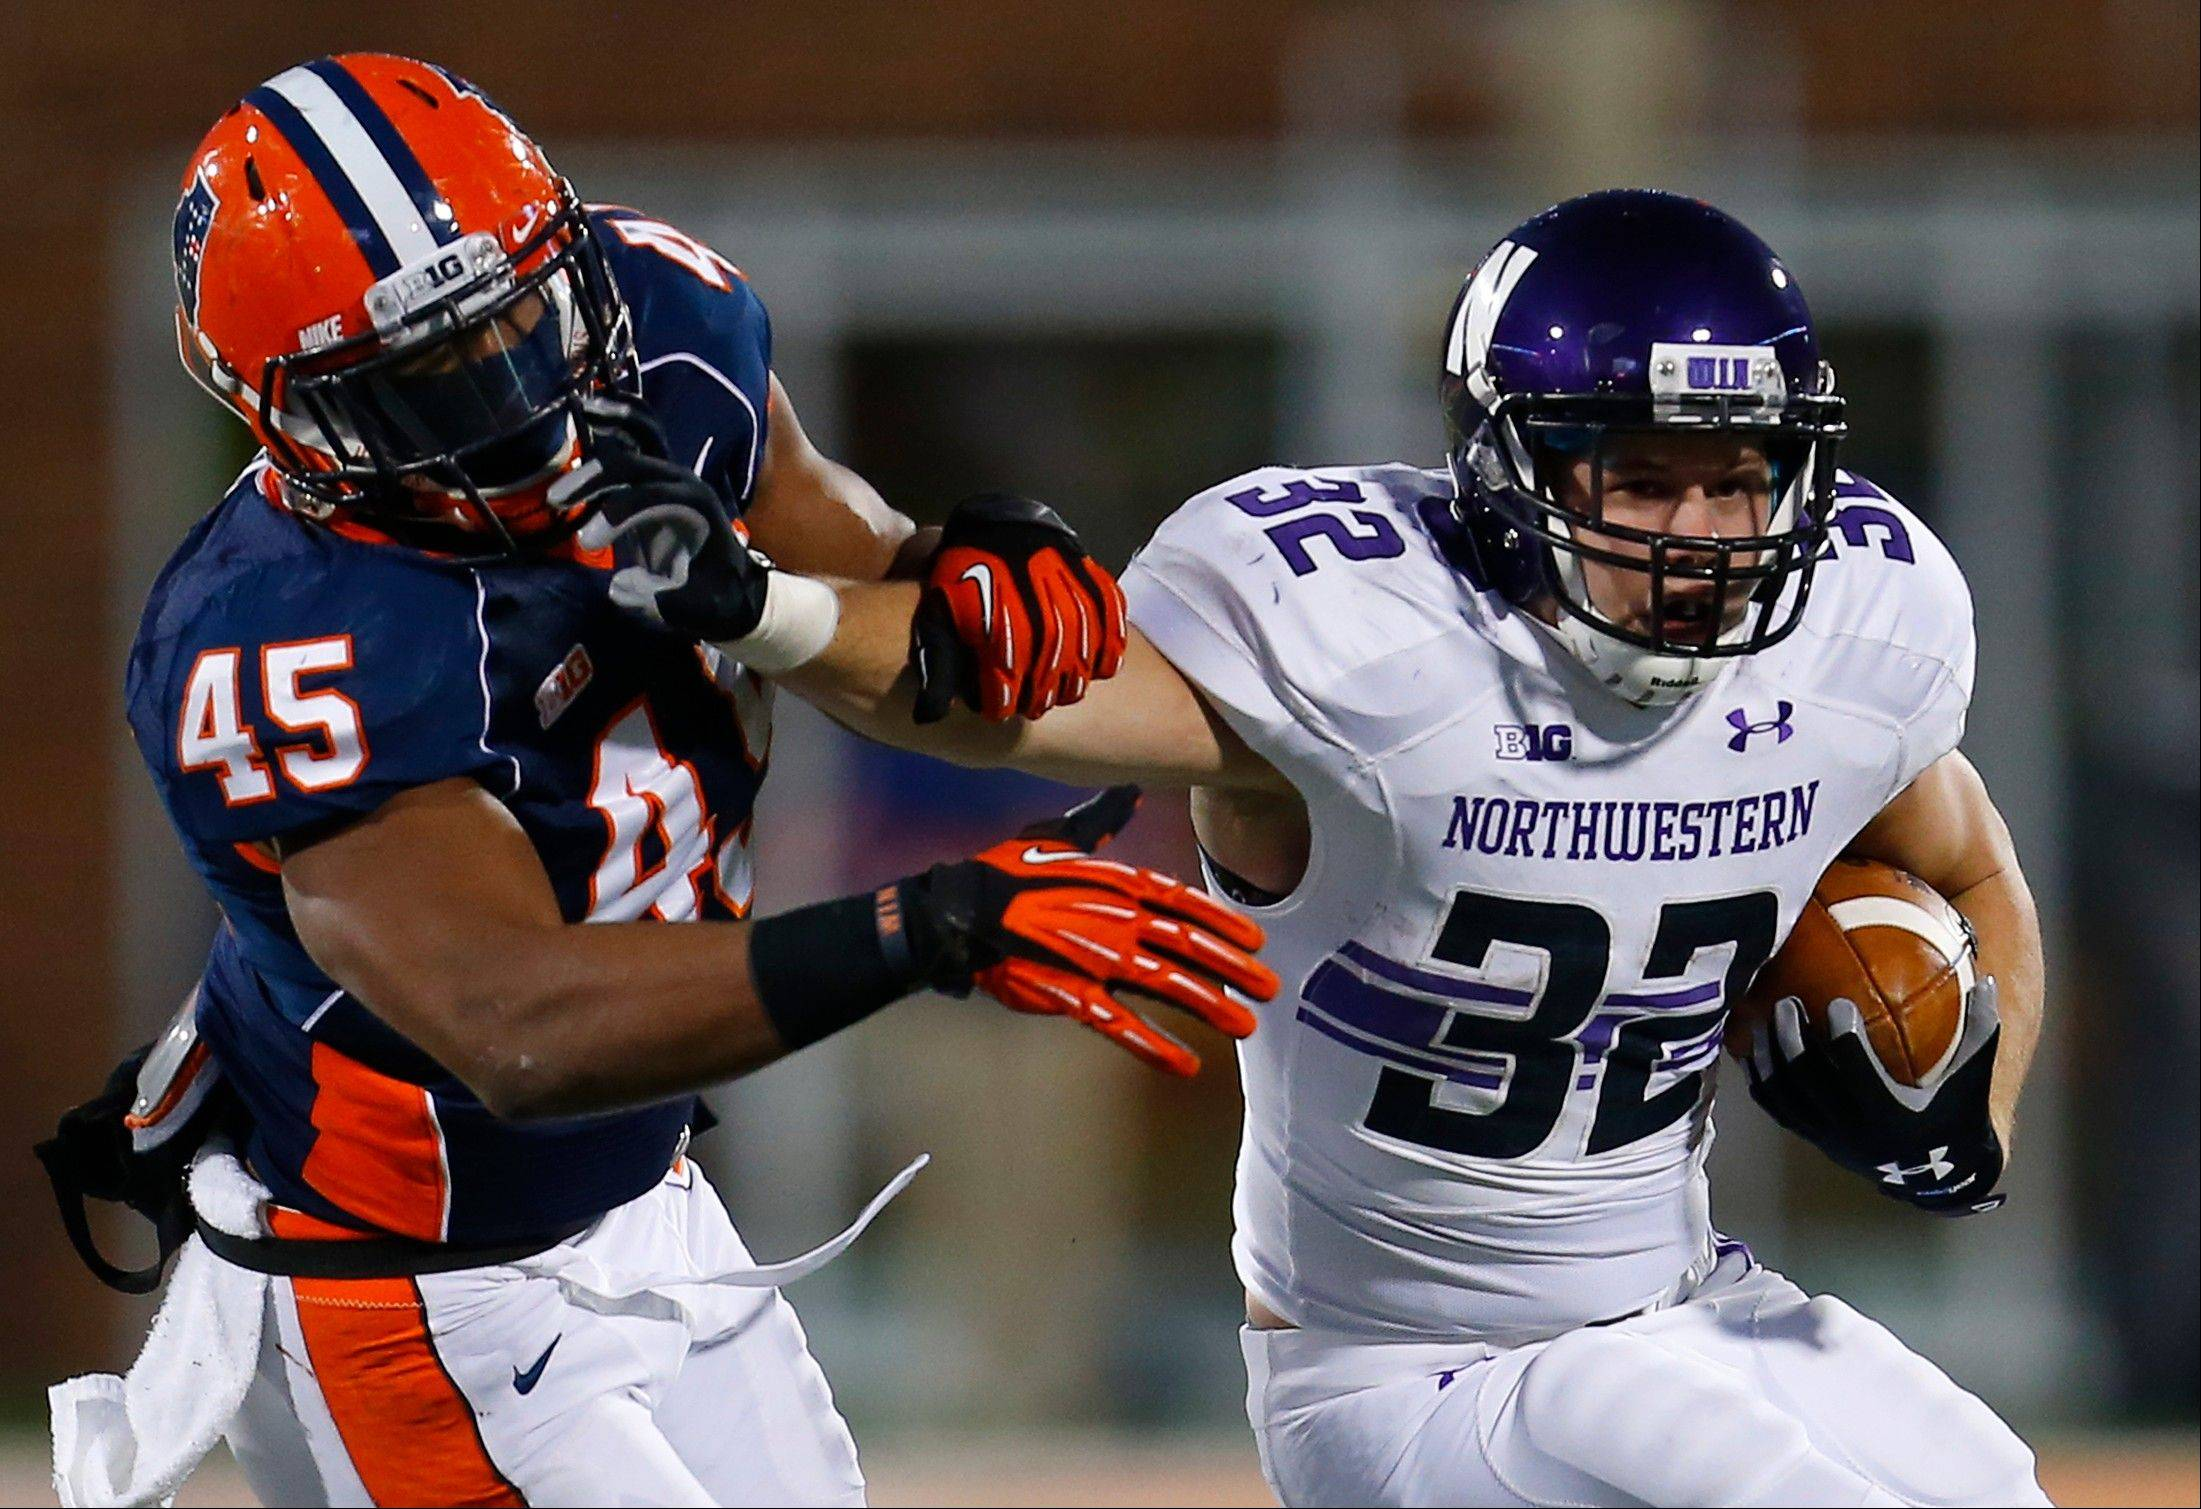 Northwestern running back Mike Trumpy (32) stiff arms Illinois linebacker Jonathan Brown (45) during the second half of an NCAA college football game on Saturday, Nov. 30, 2013, in Champaign, Ill. Northwestern won the game 37-34. (AP Photo/Jeff Haynes)